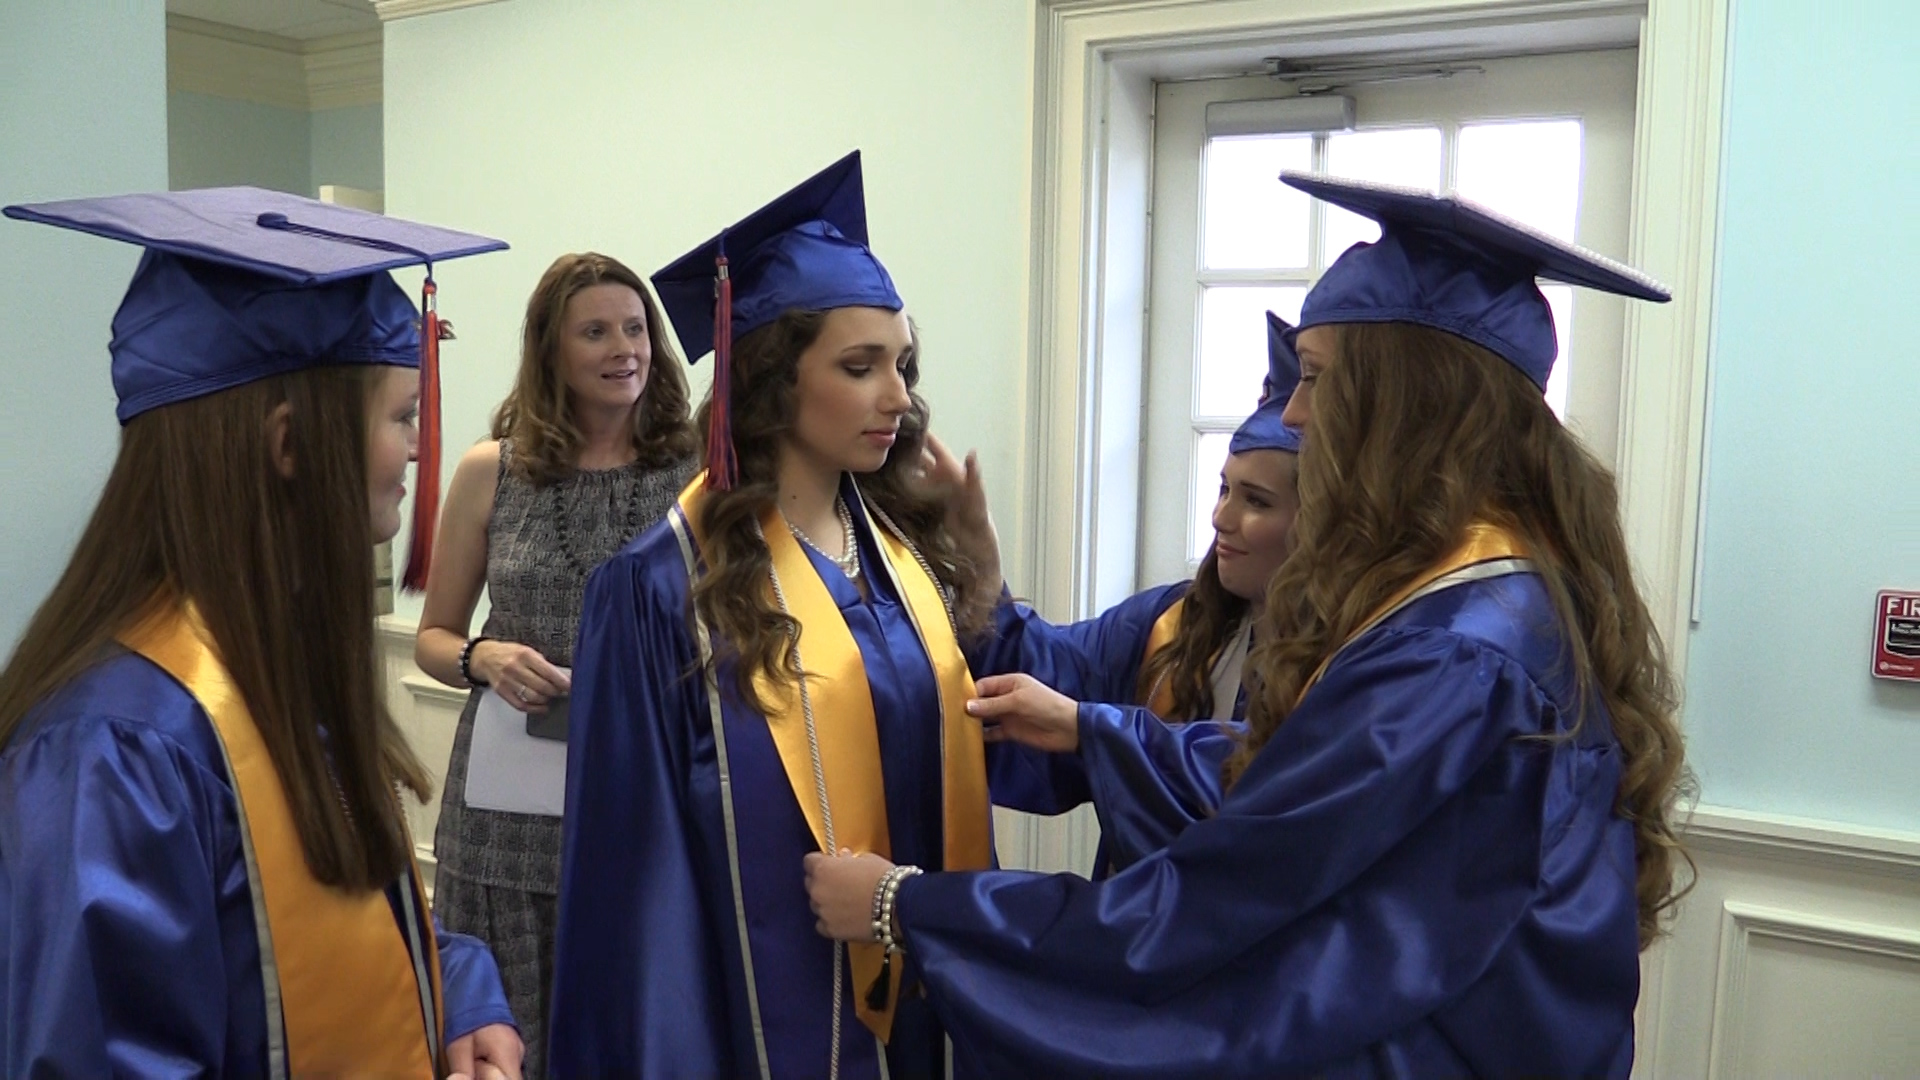 VIDEO - Boyd Christian School graduation